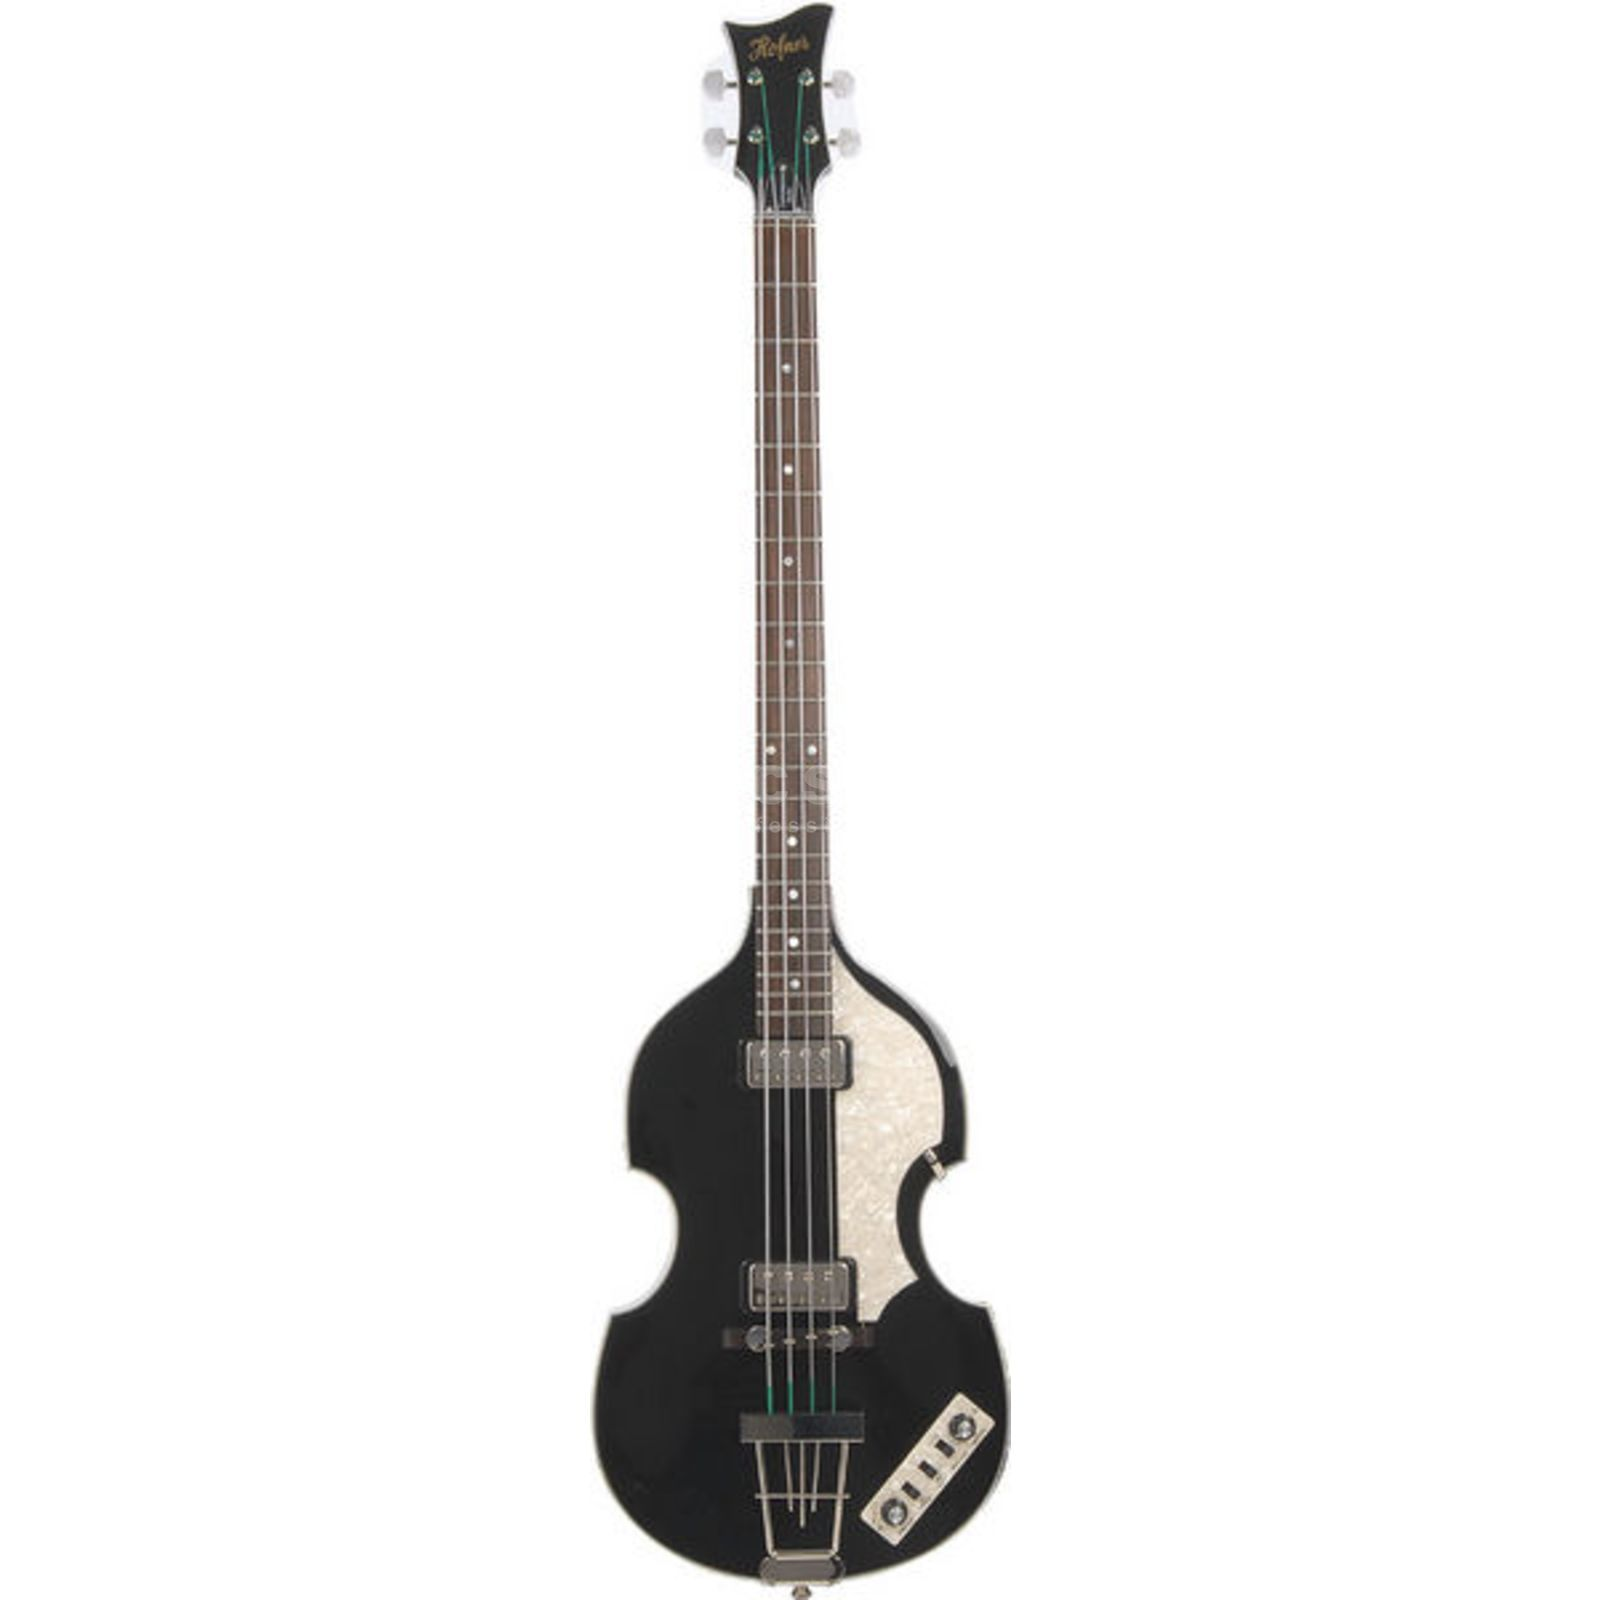 Höfner Contemporary Violin Bass Black HCT-500/1-BK B-Stock Produktbillede